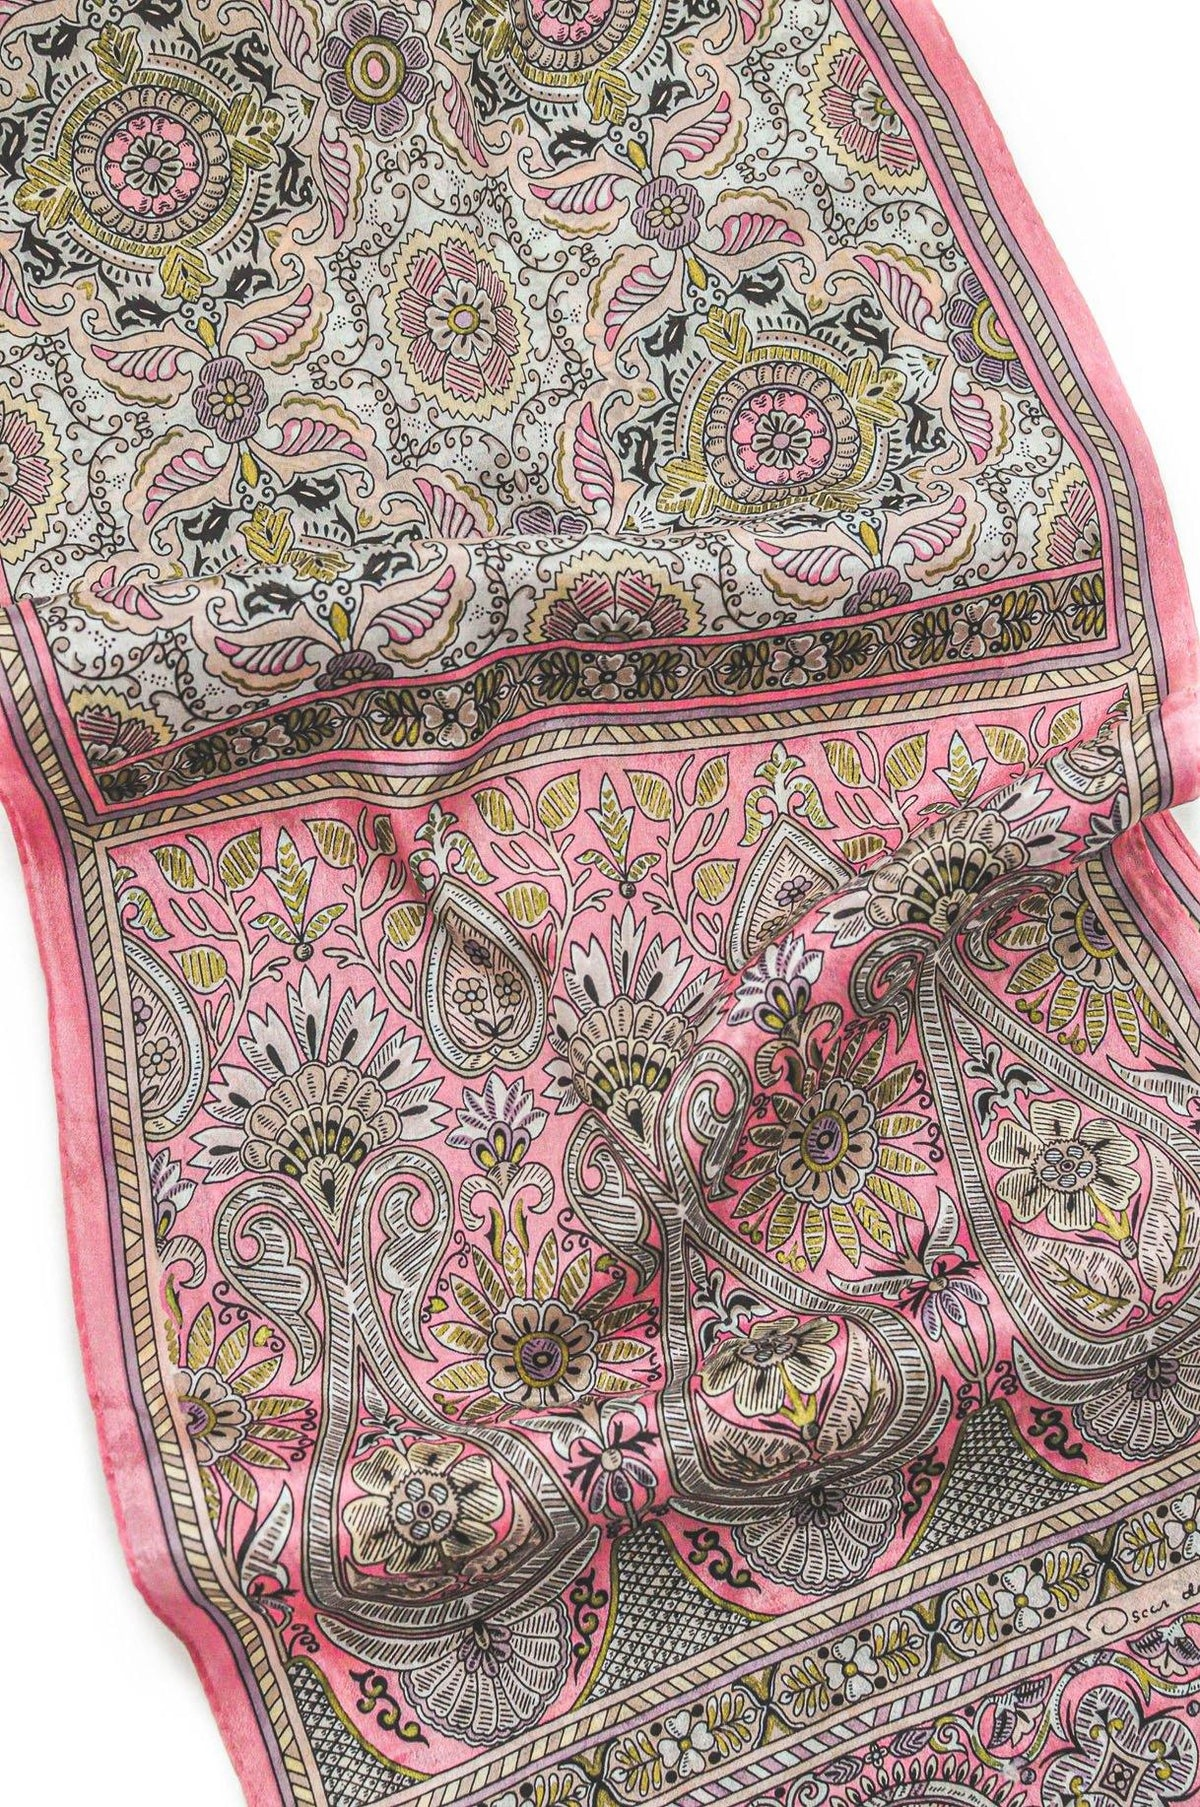 Vintage Oscar de la Renta Pink Rectangular Scarf from Sweet and Spark